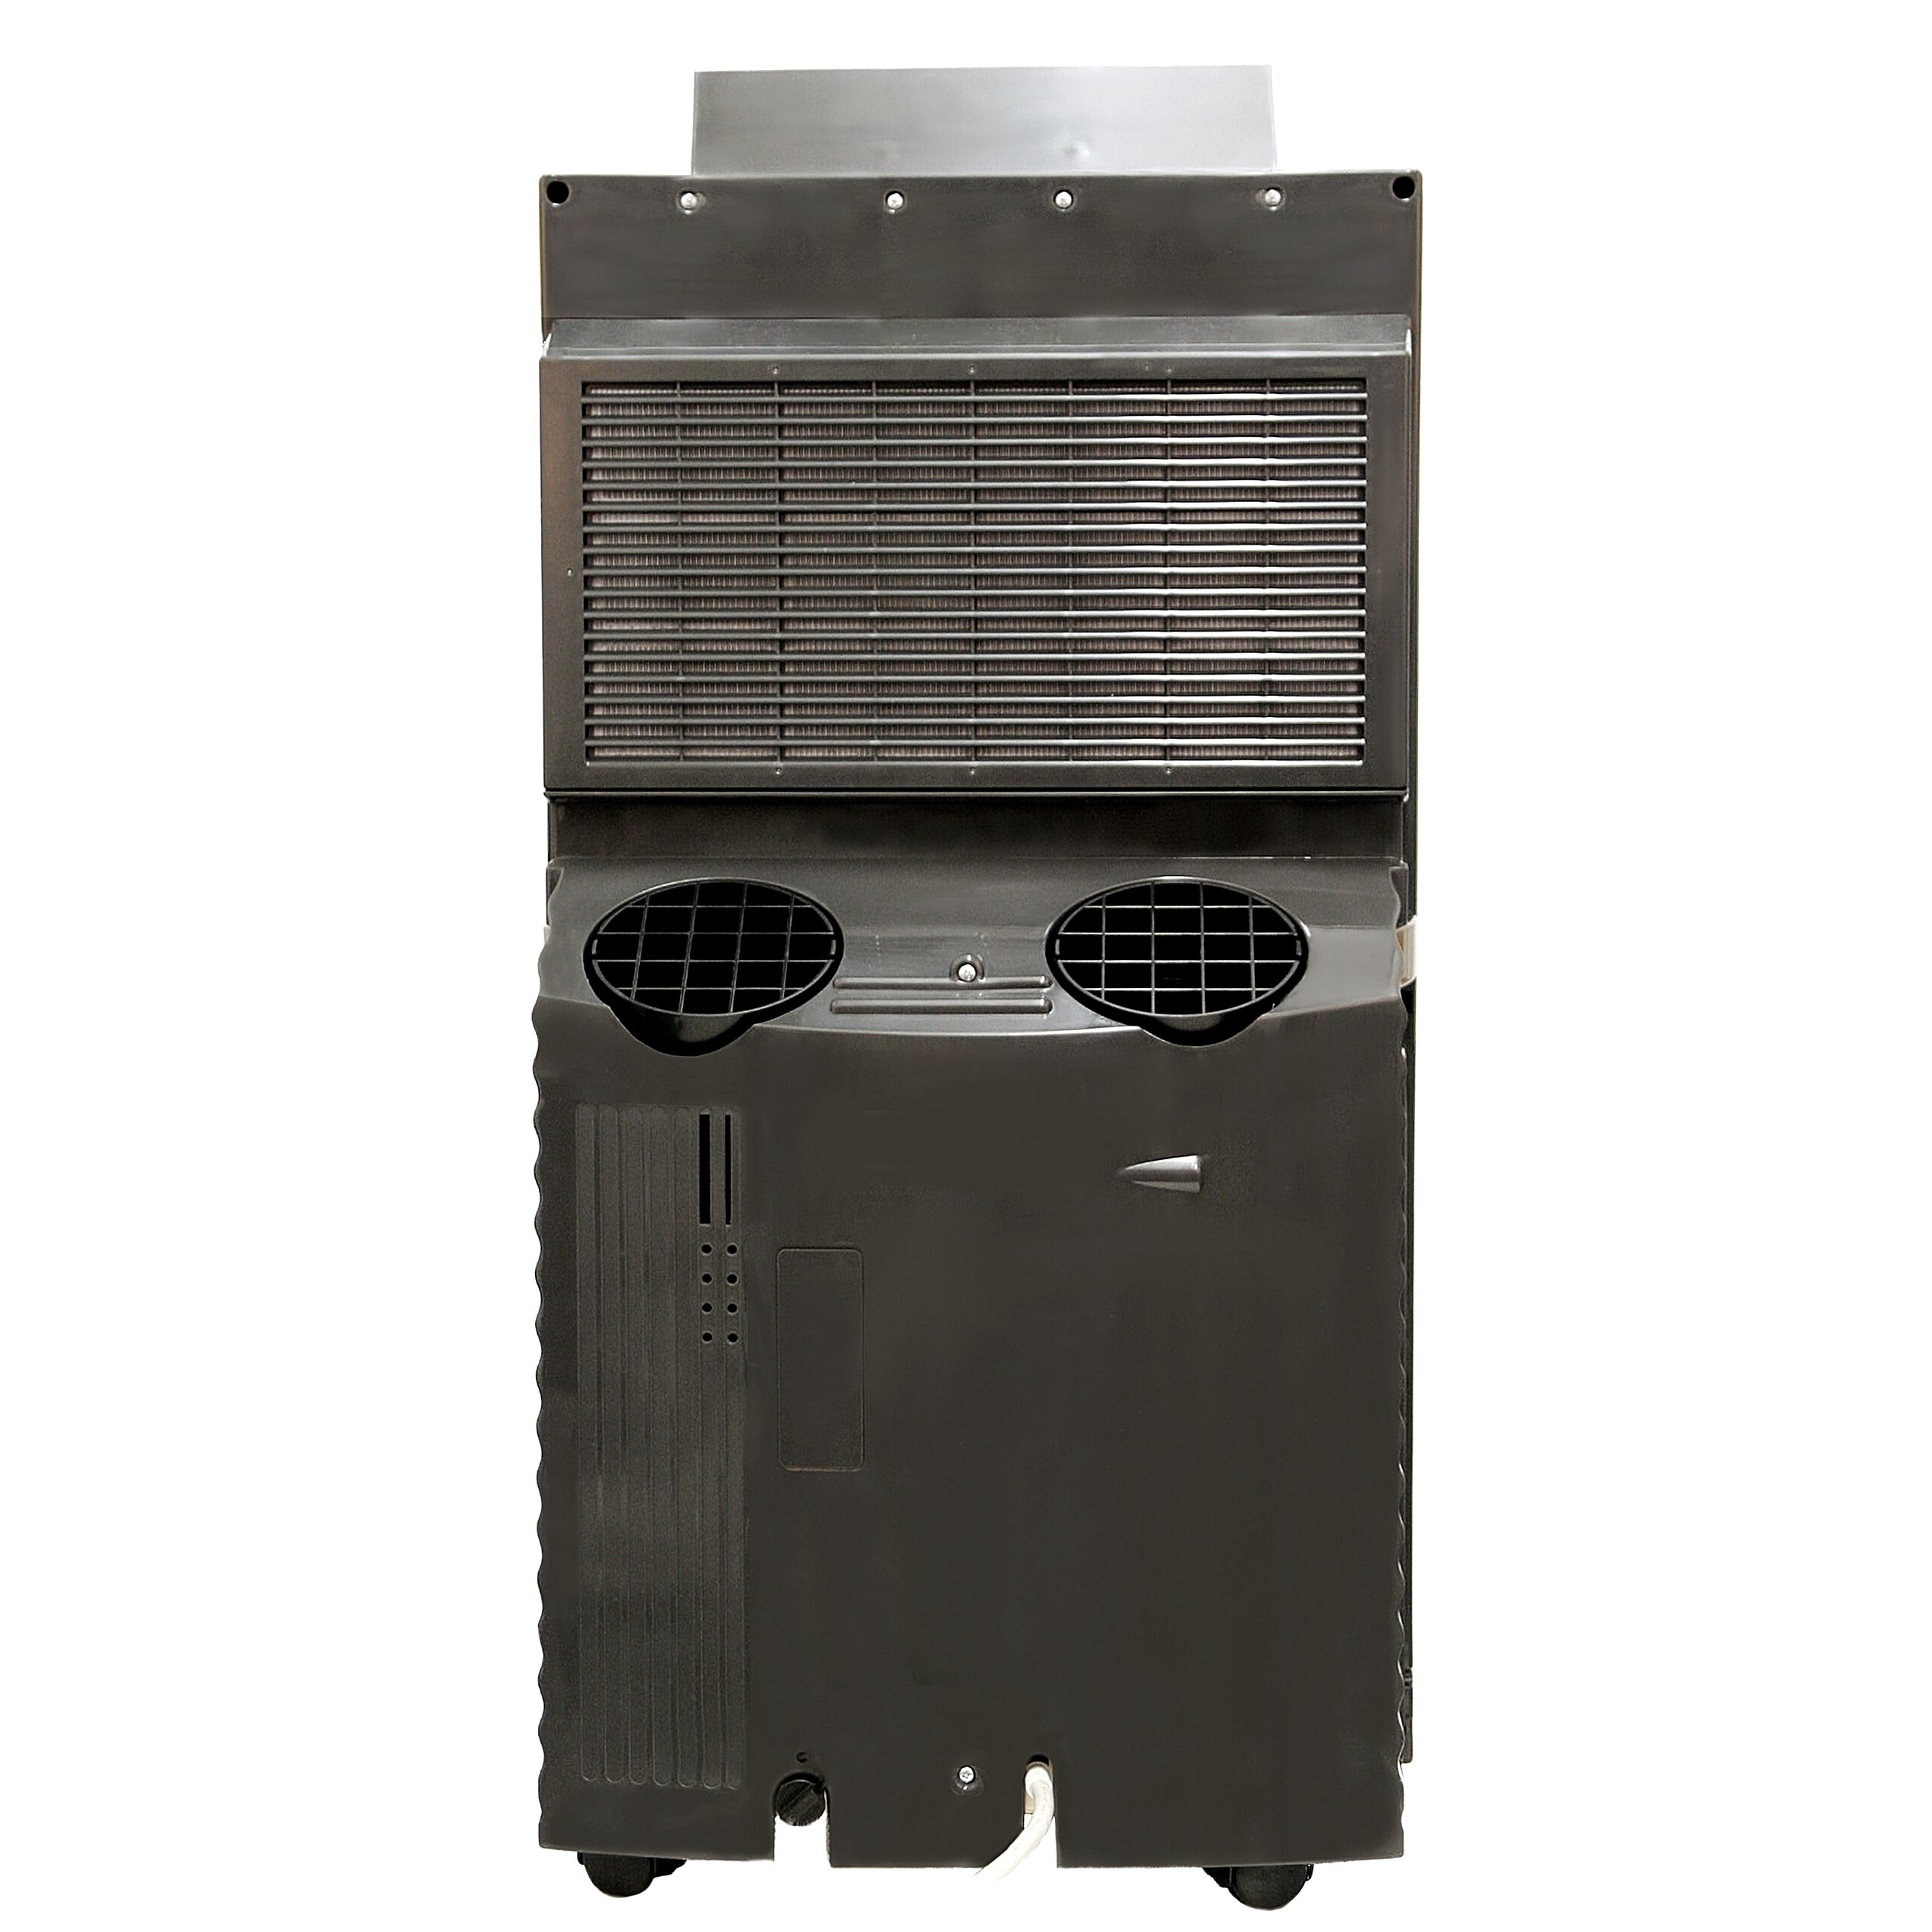 14 000 BTU Dual Hose Portable Air Conditioner with Remote by Whynter #39352F